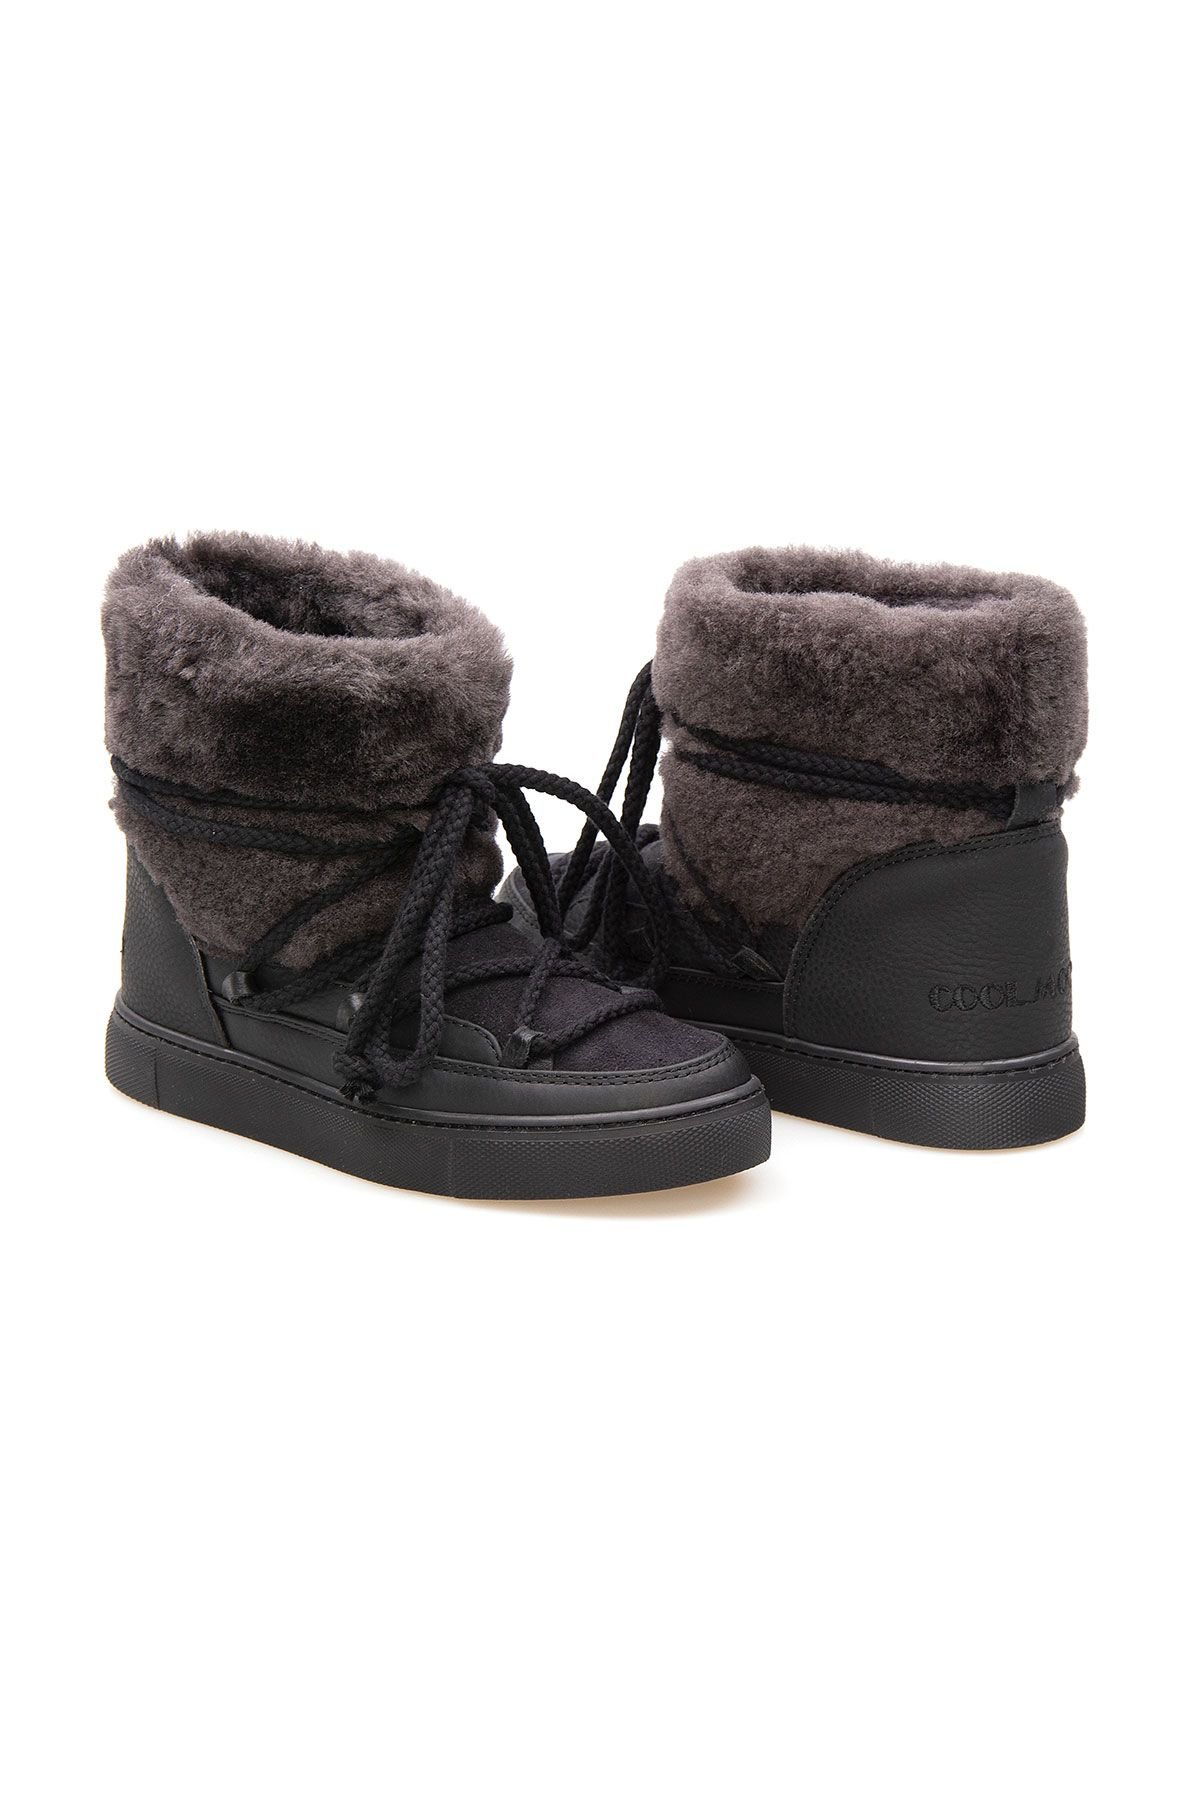 Cool Moon Genuine Sheepskin Women's Sneakers 355061 Black